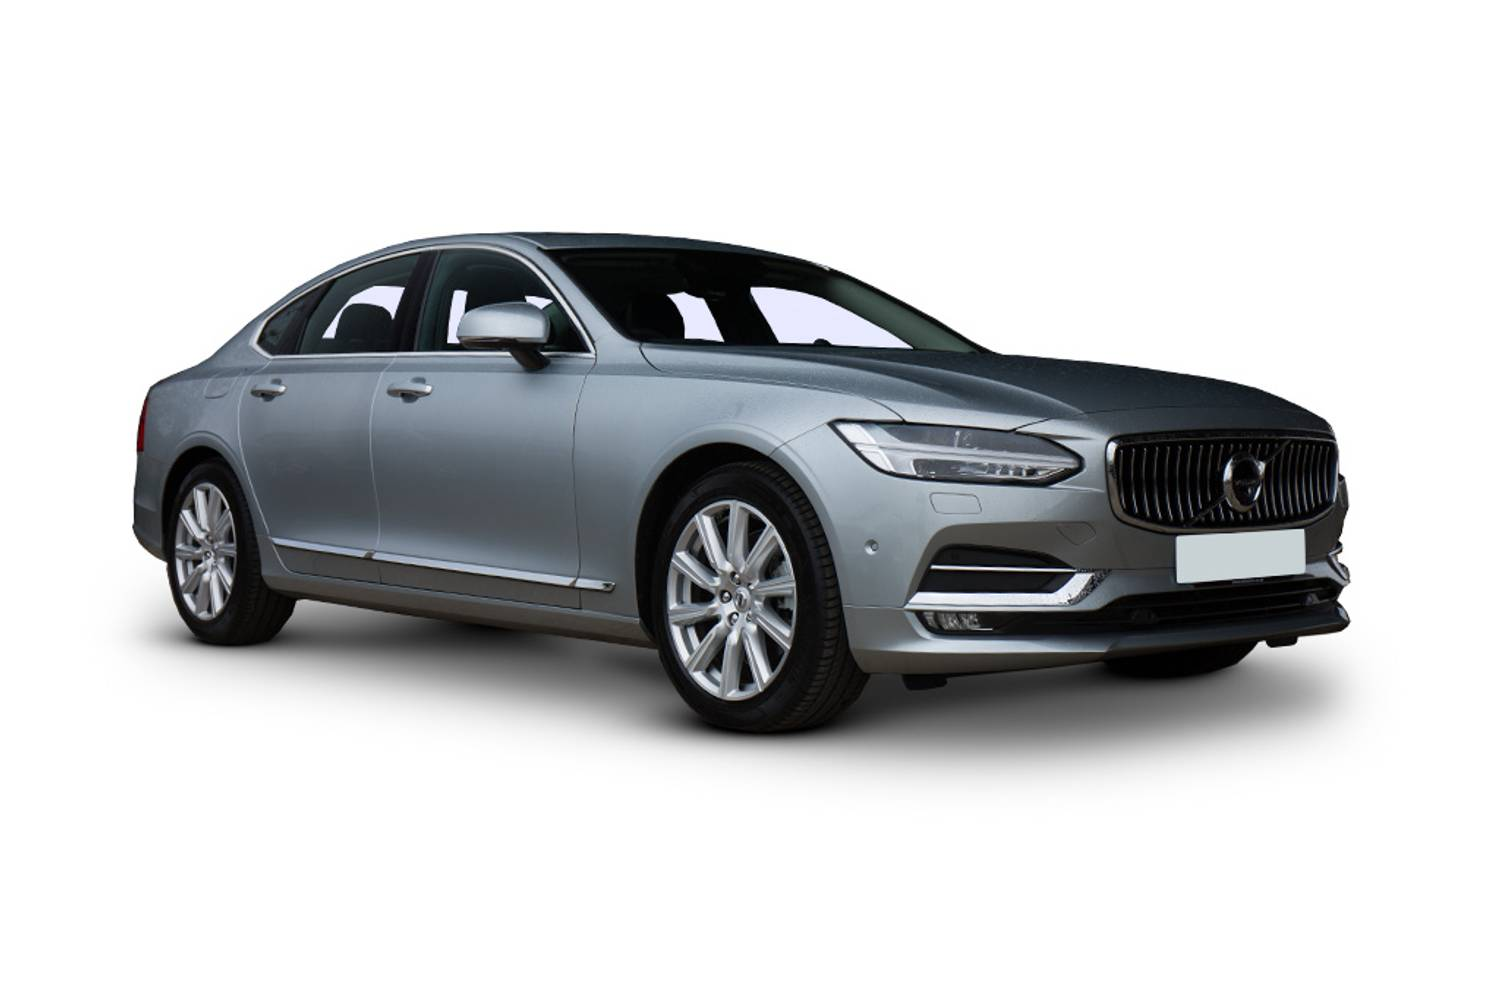 new volvo s90 diesel saloon 2 0 d4 inscription 4 door geartronic 2016 for sale. Black Bedroom Furniture Sets. Home Design Ideas